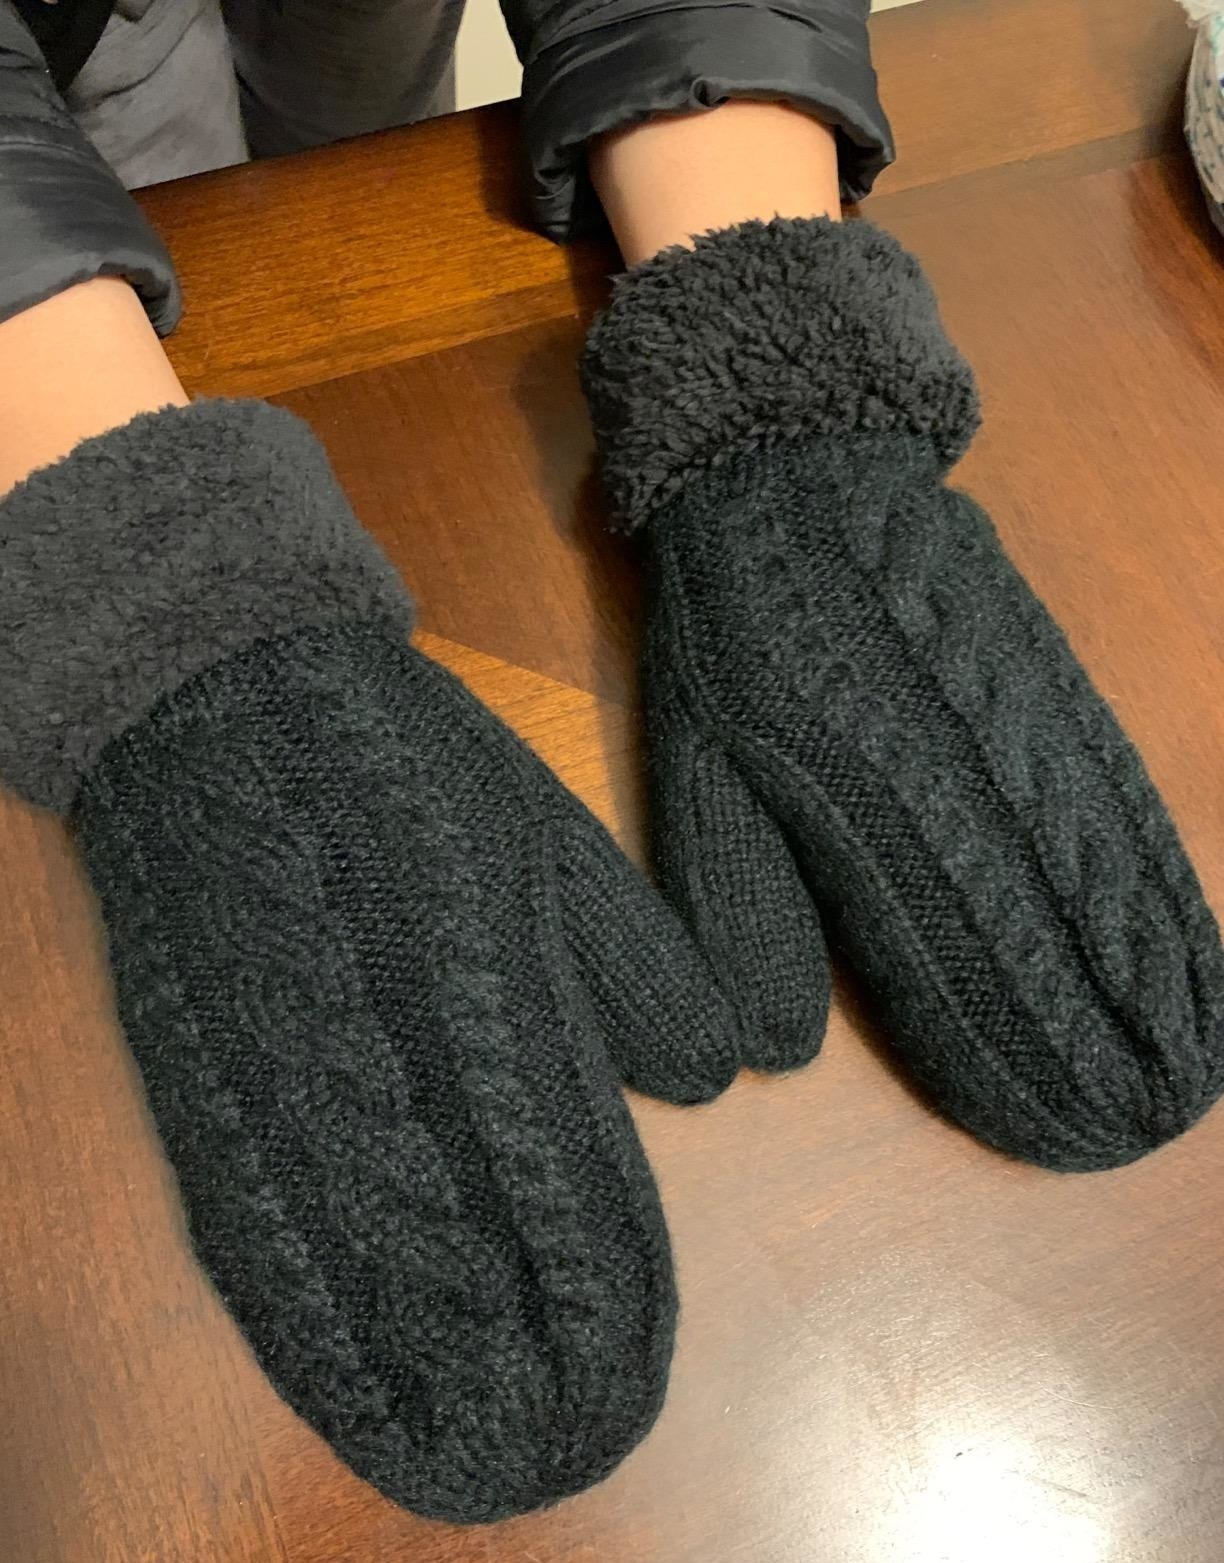 A reviewer wearing the mittens in black